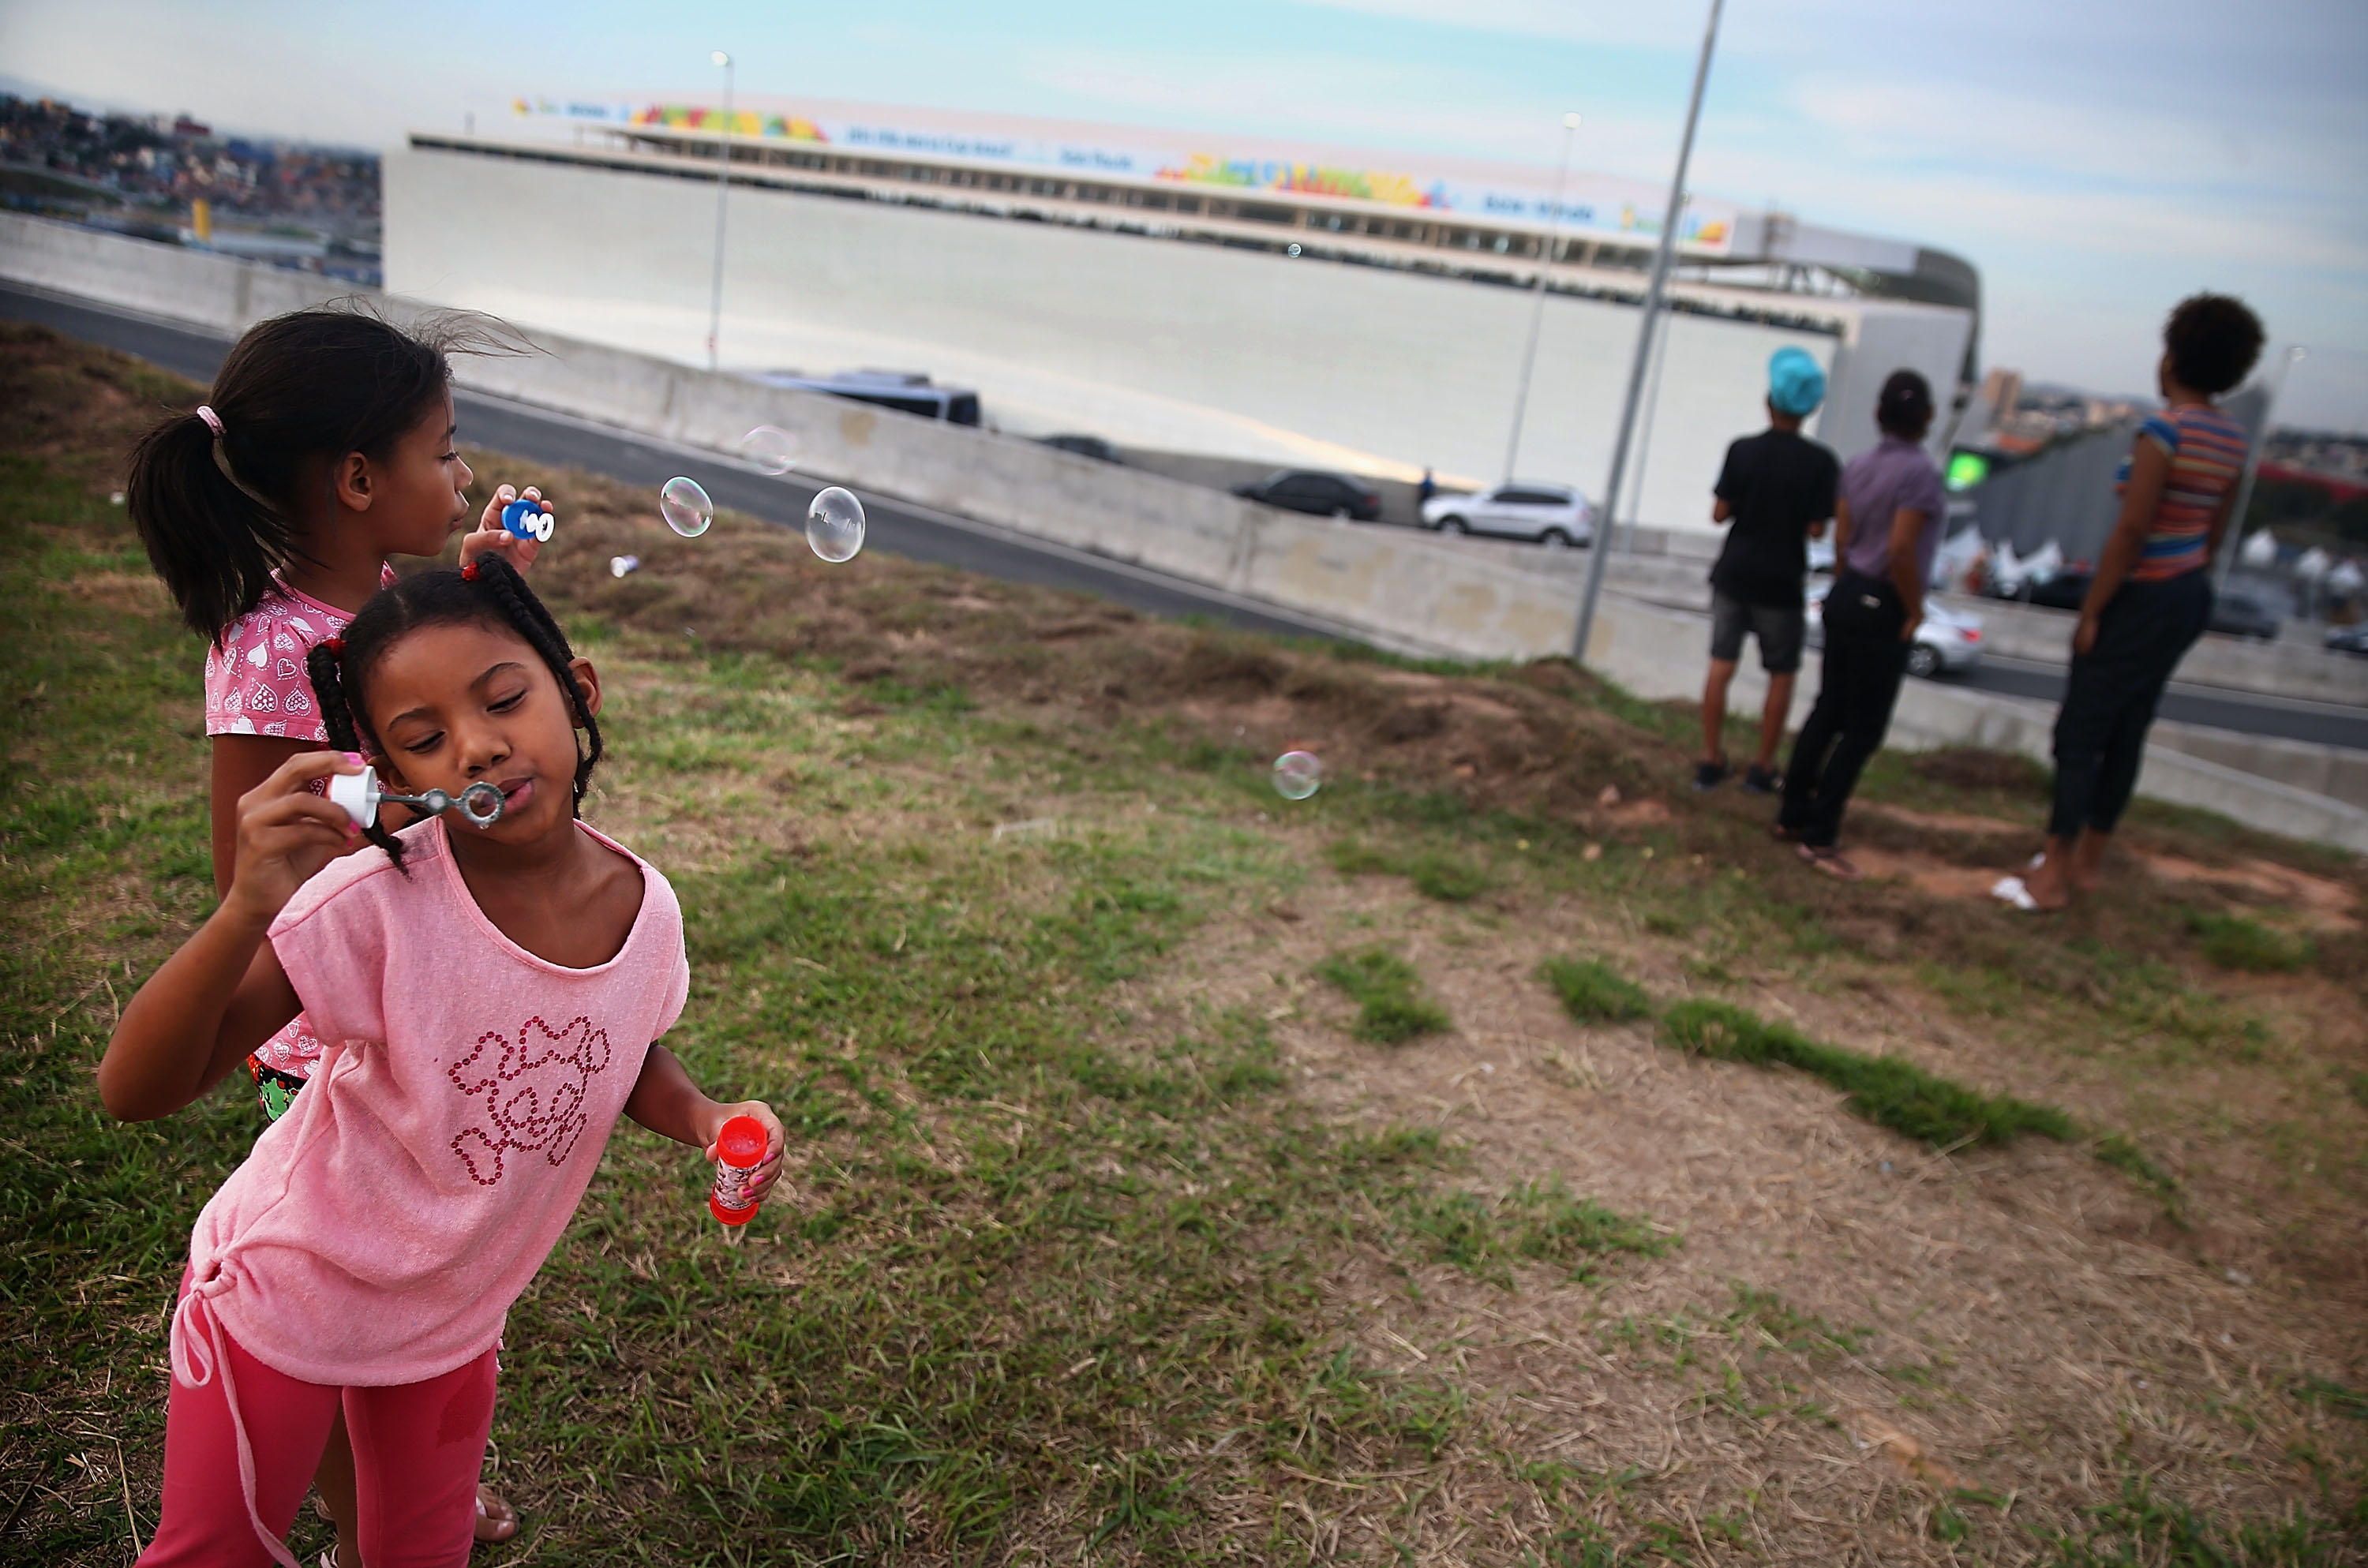 Residents from a nearby community gather while catching a glimpse outside Itaquerao stadium, also known as Arena de Sao Paulo and Arena Corinthians, on June 8, 2014 in Sao Paulo.